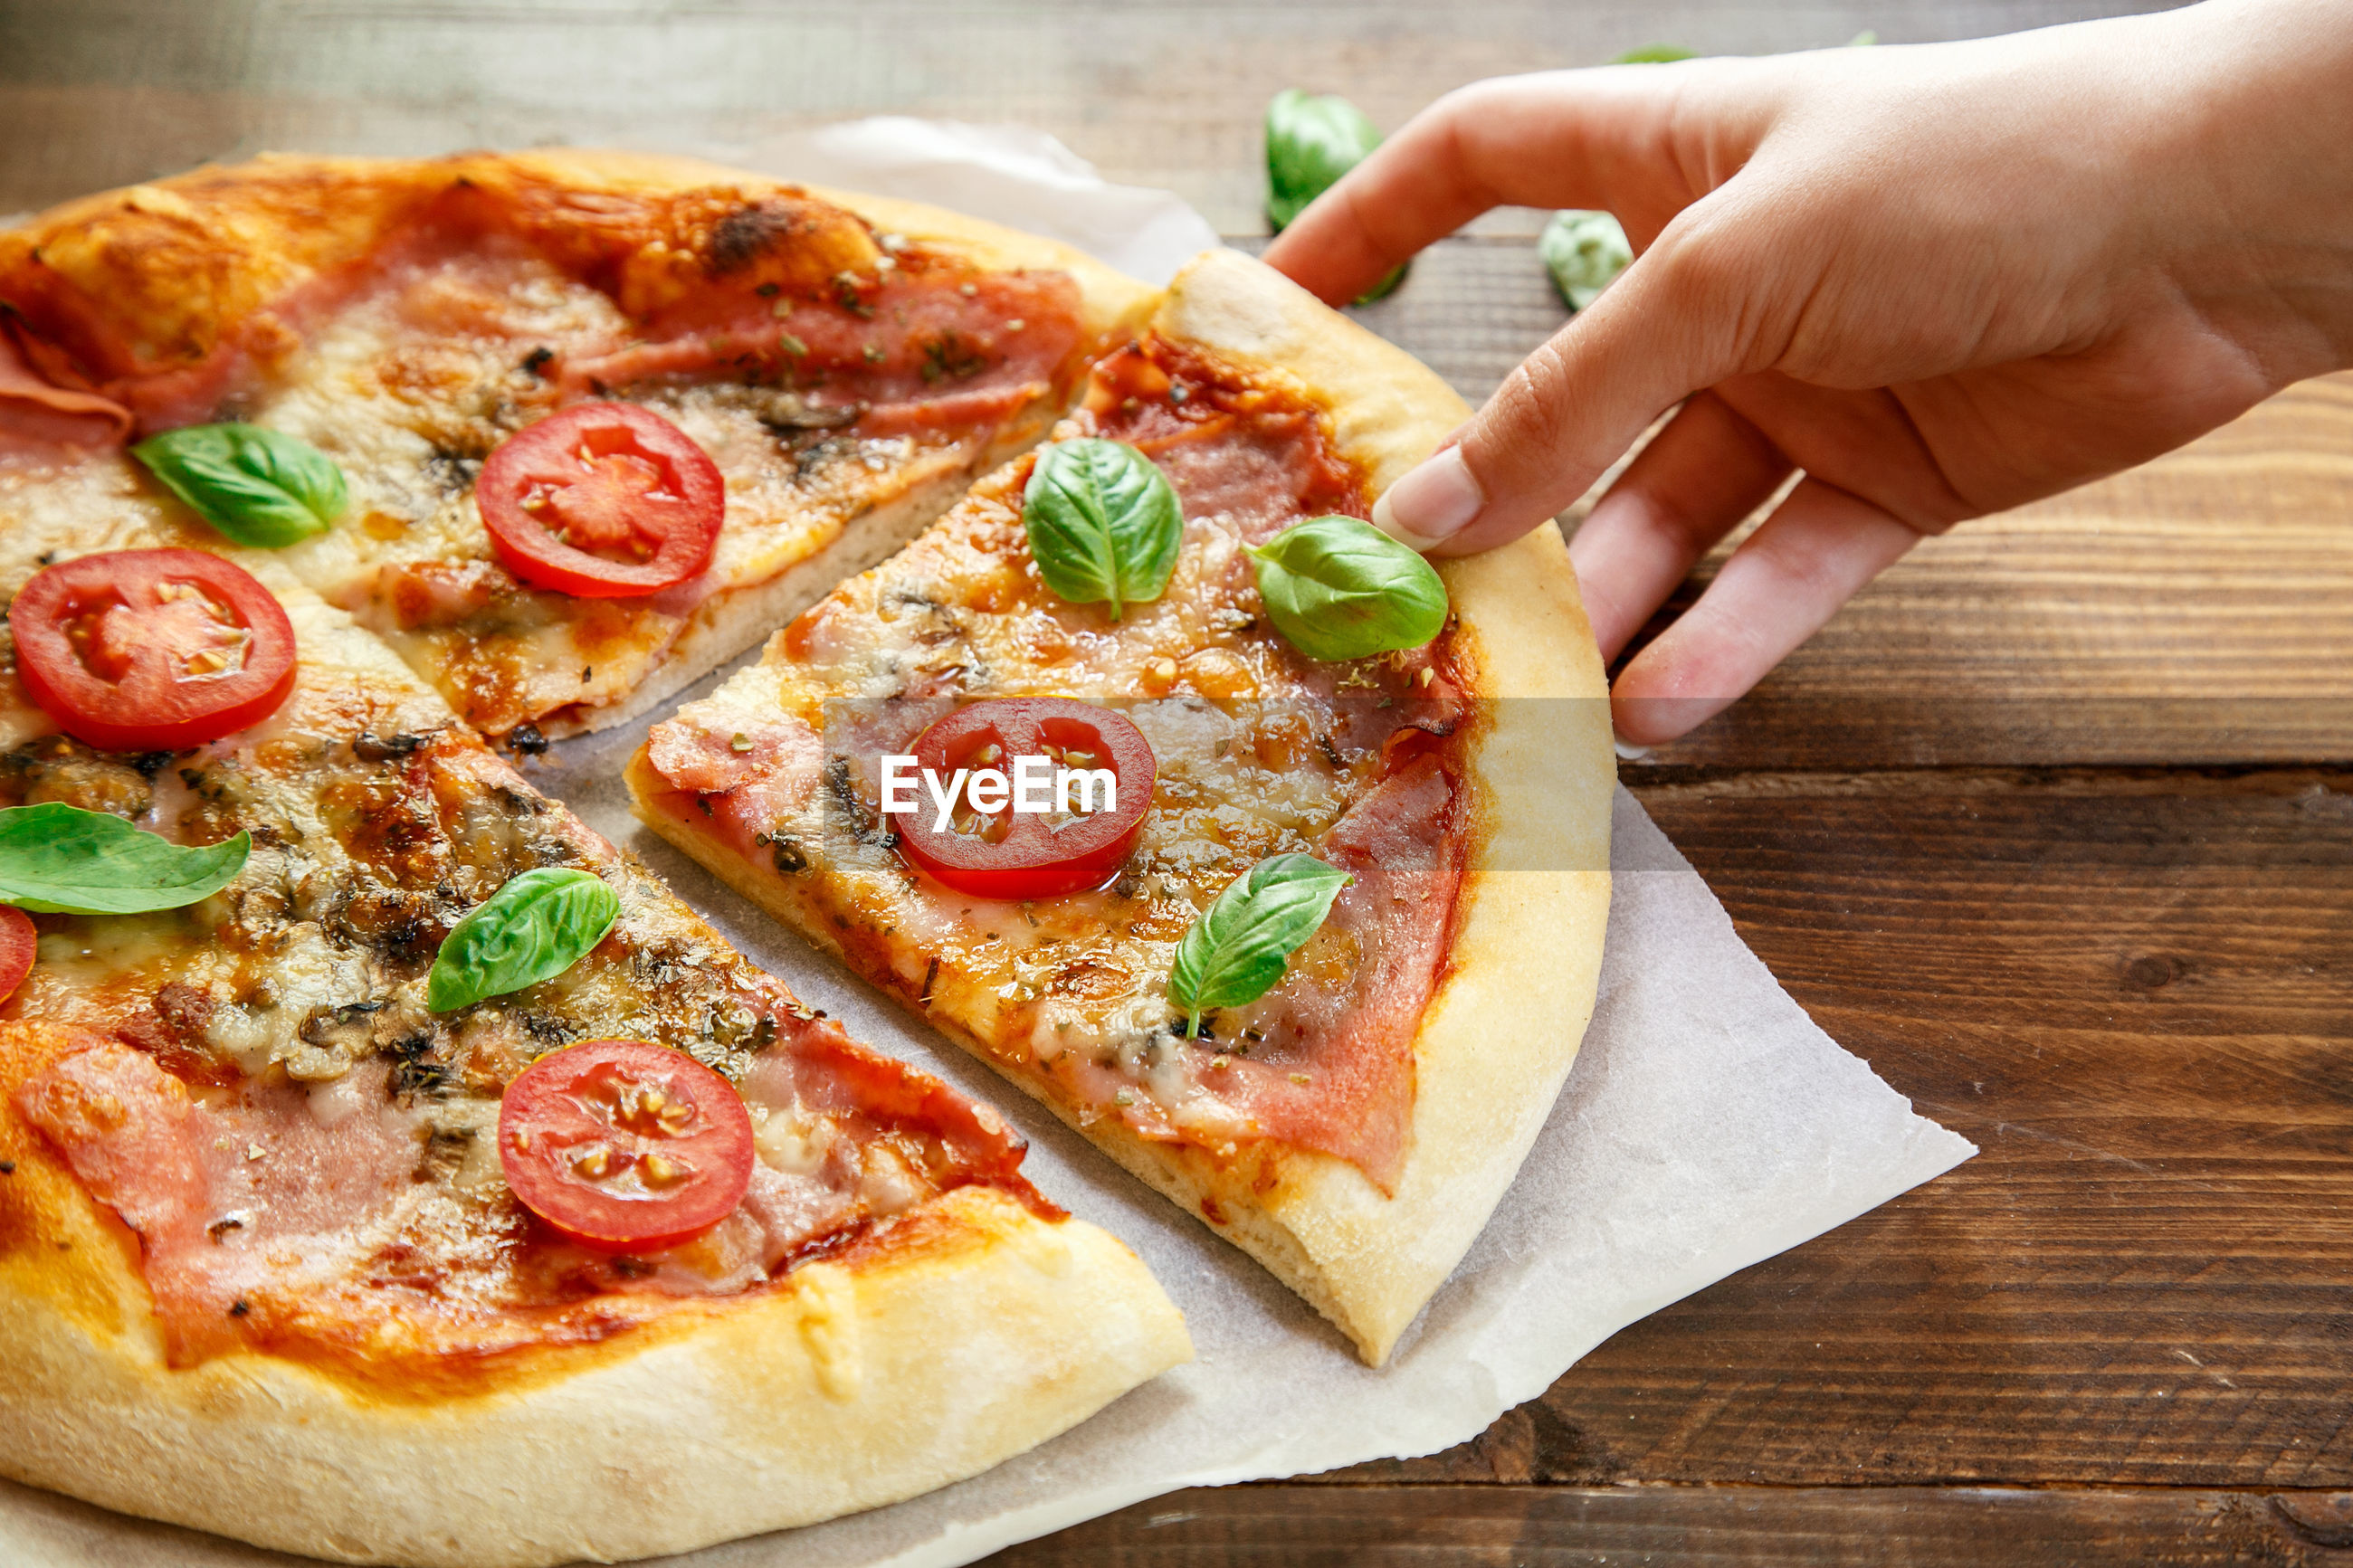 Cropped image of hand holding fresh margherita pizza with salami on wooden table